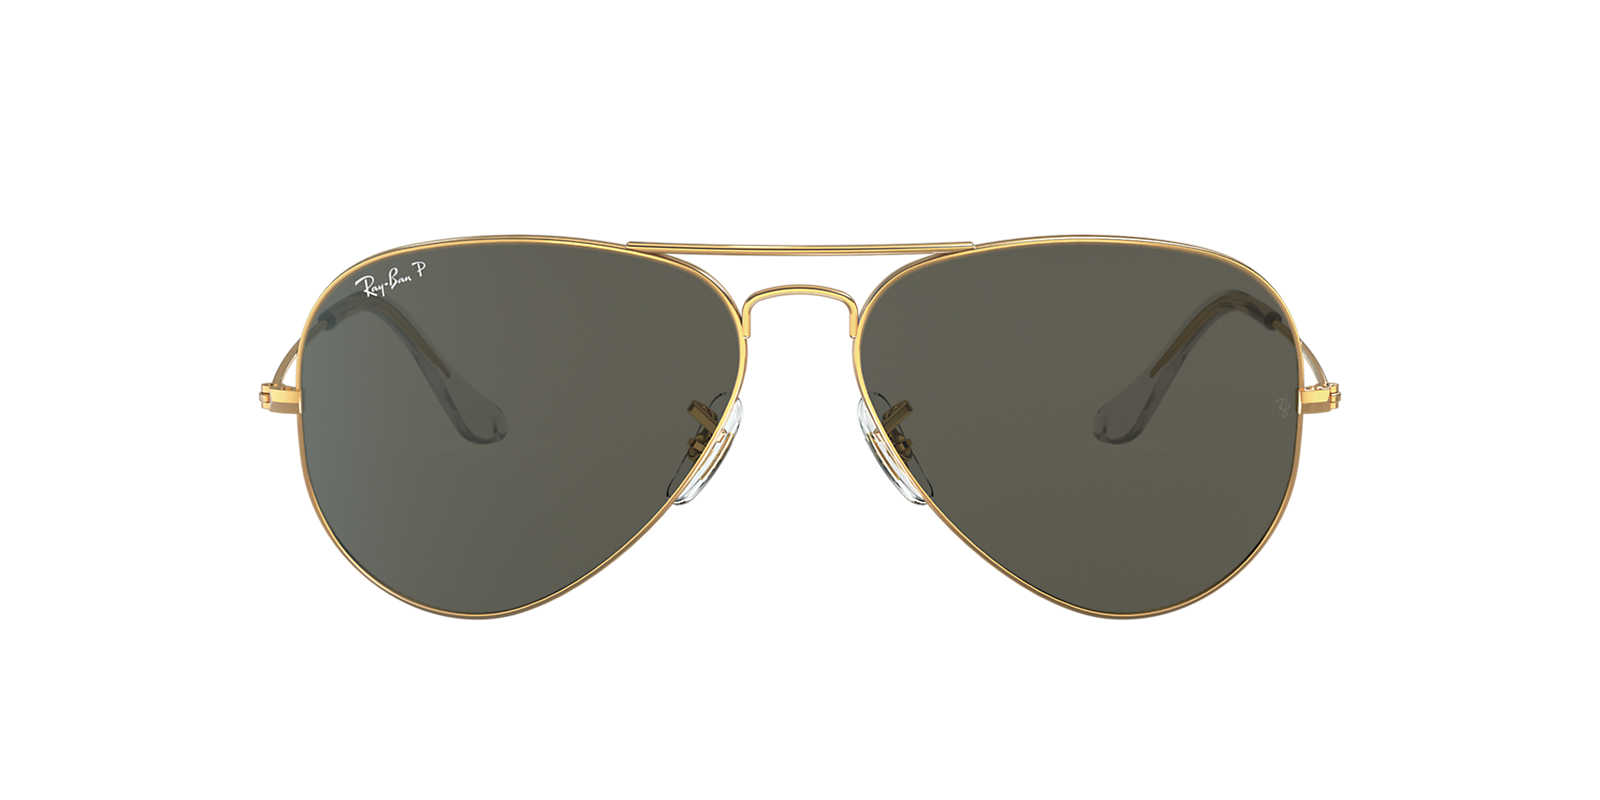 ray ban aviator green polarized  ray ban gold shiny rb3025 58 original aviator green polarized lenses 58mm